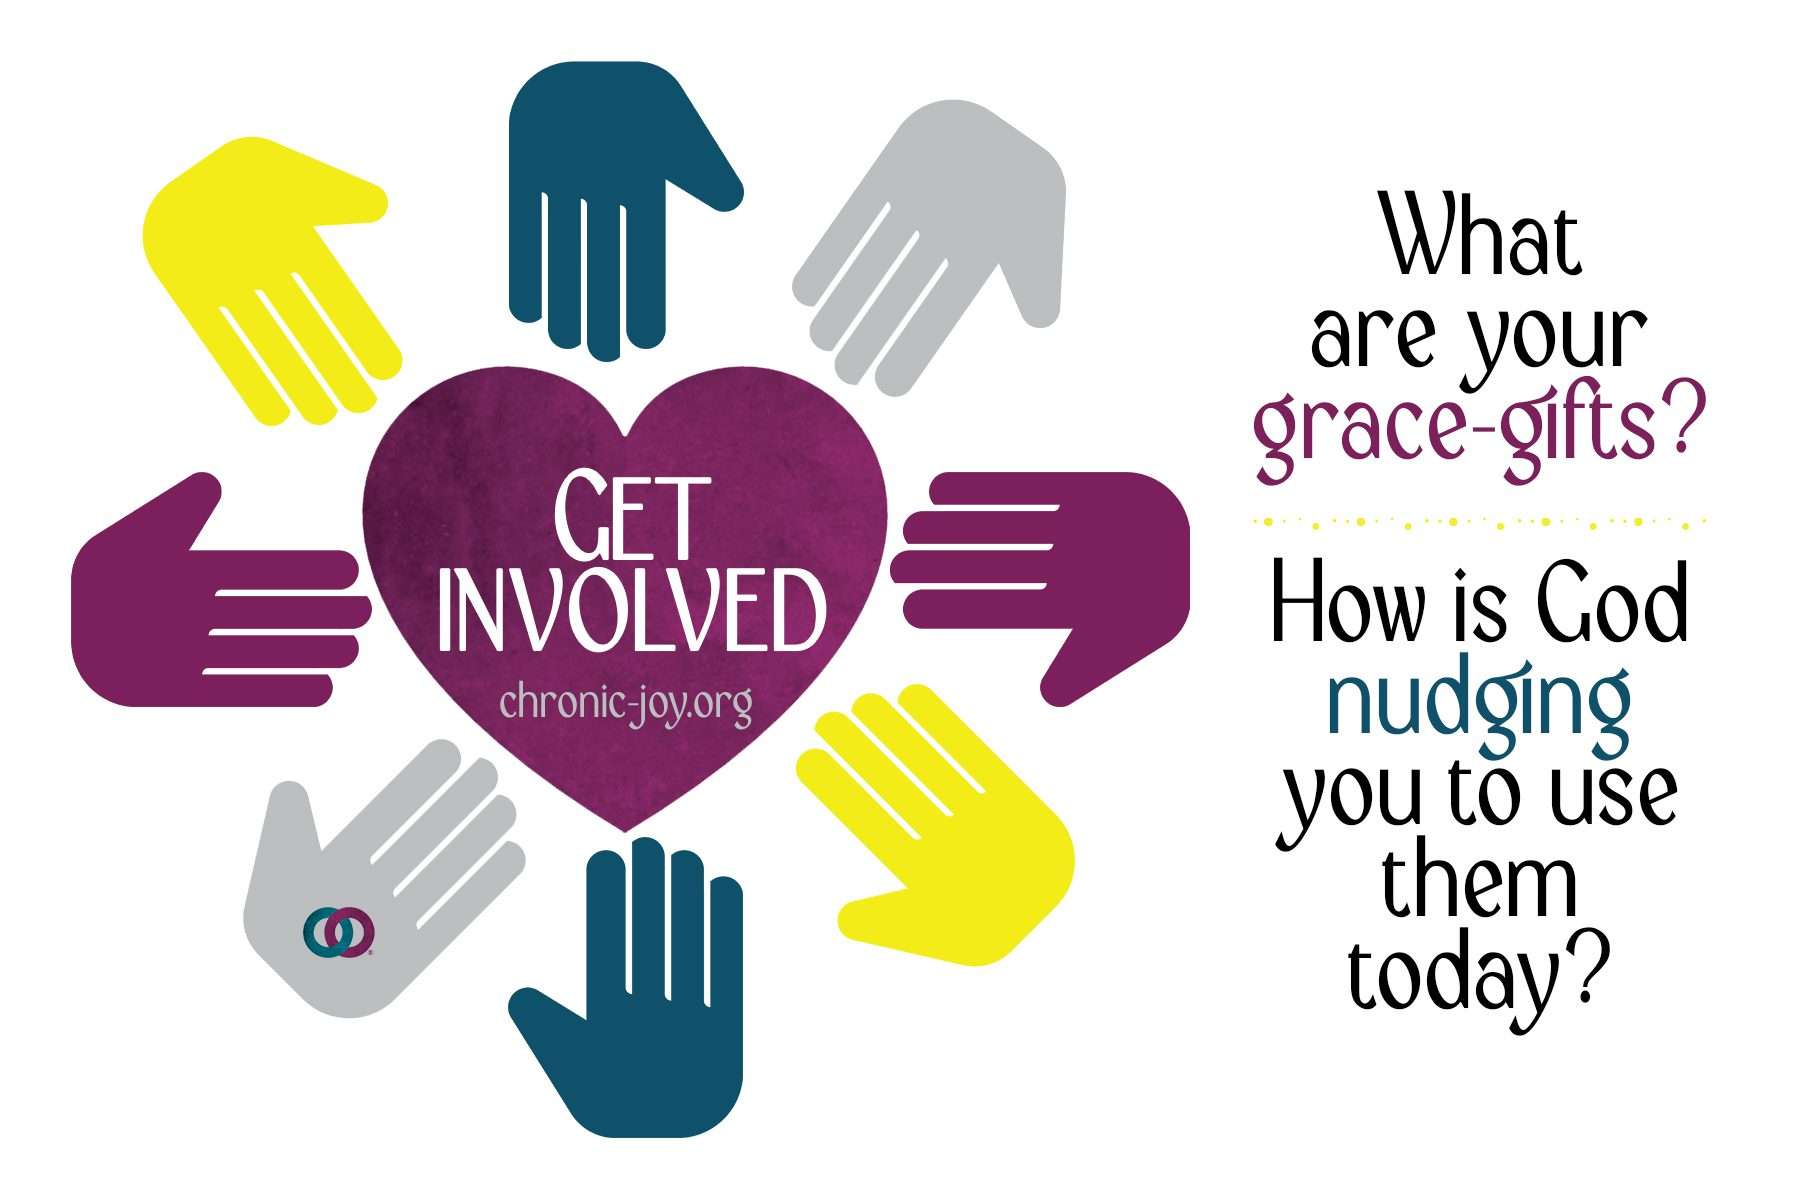 Get Involved • What are your grace-gifts? How is God nudging you to use them today? Get Involved!